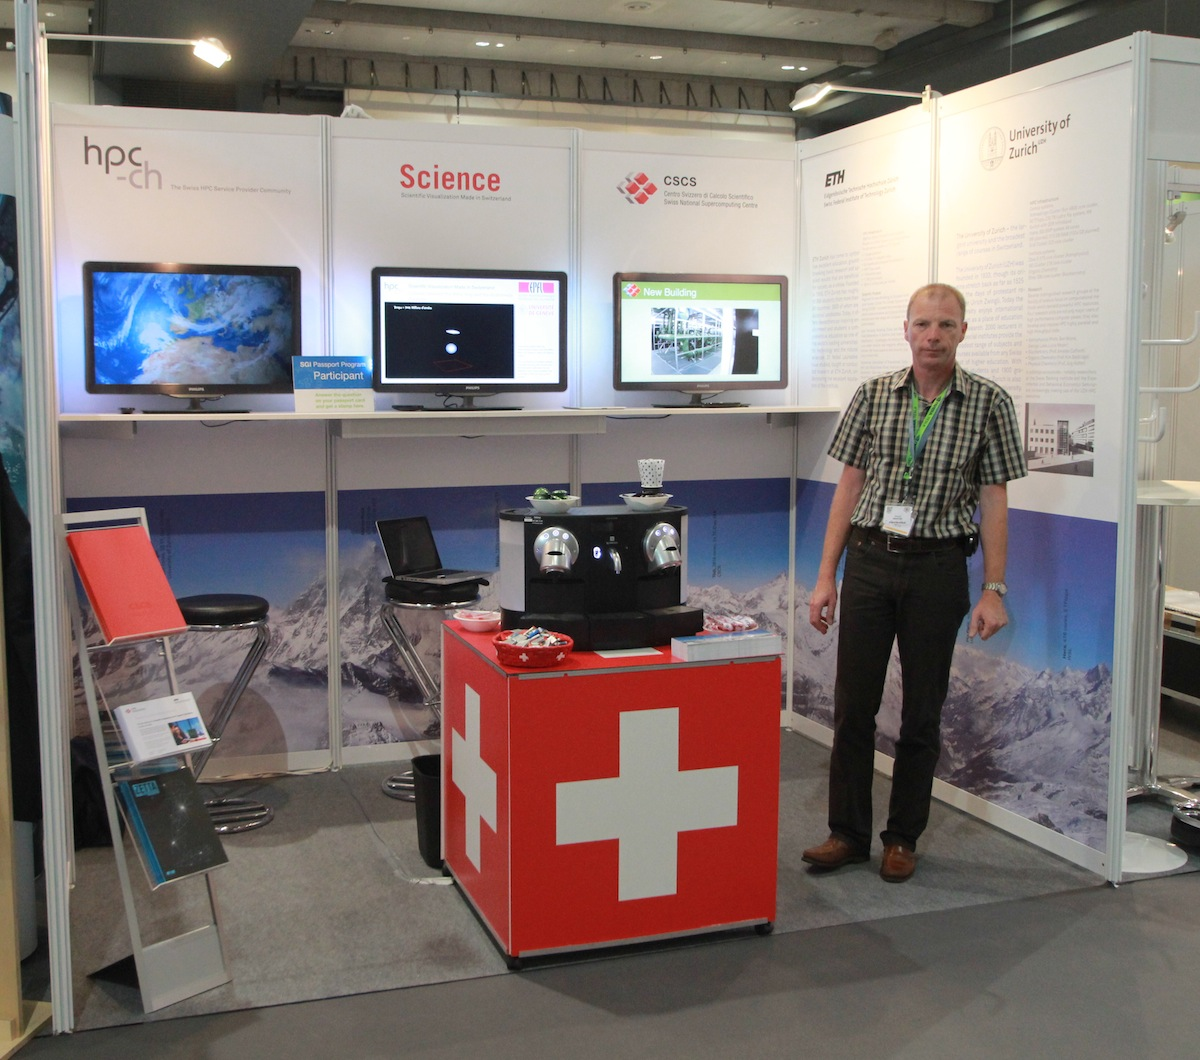 Visit hpc-ch at ISC12 at Booth Number 145